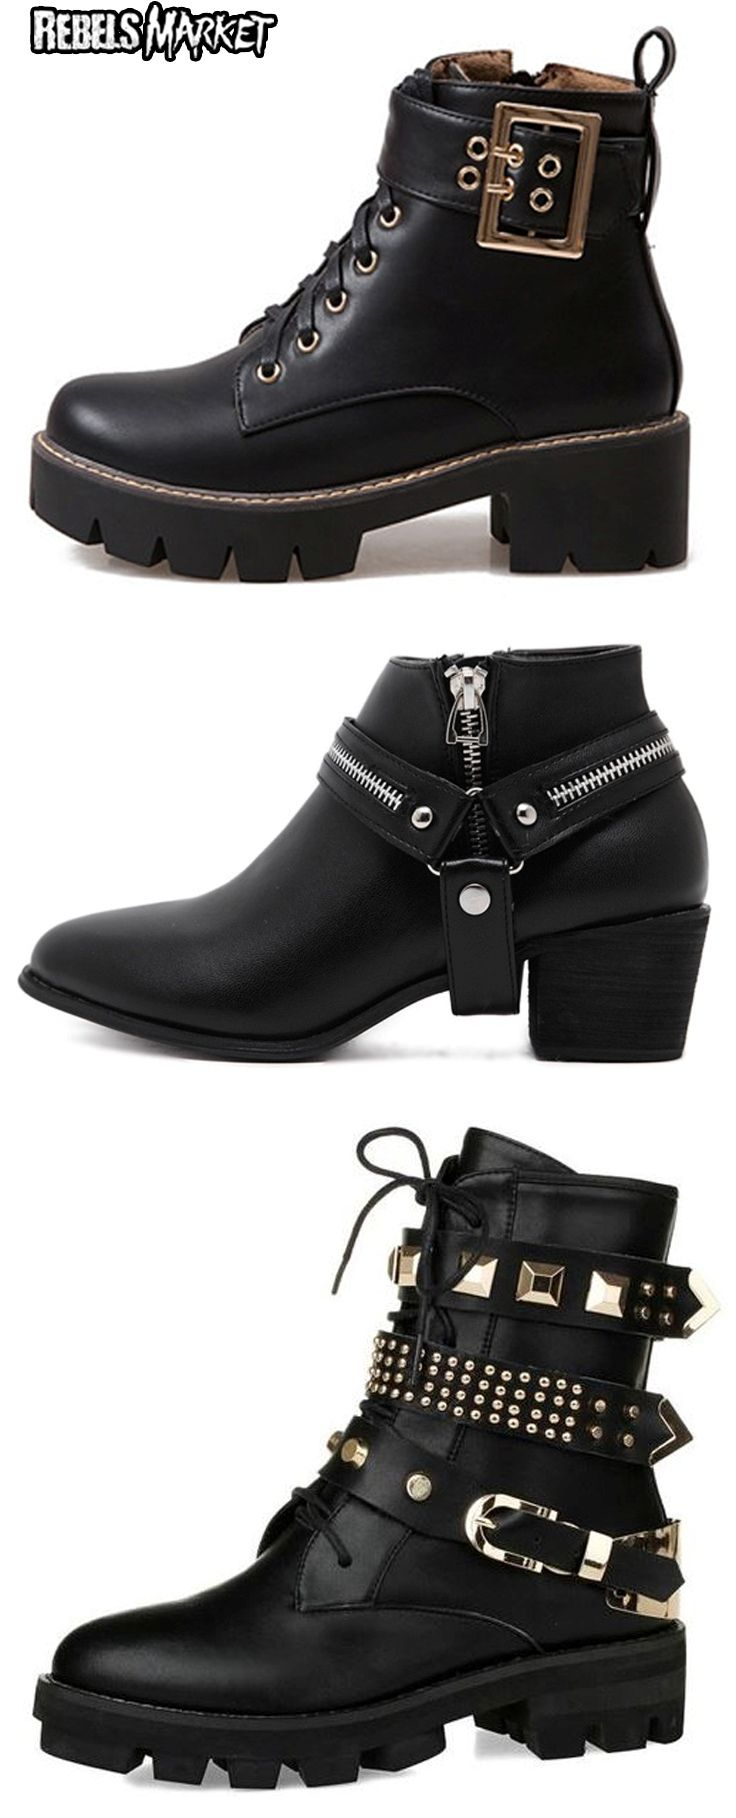 Shop punk spring boots at RebelsMarket